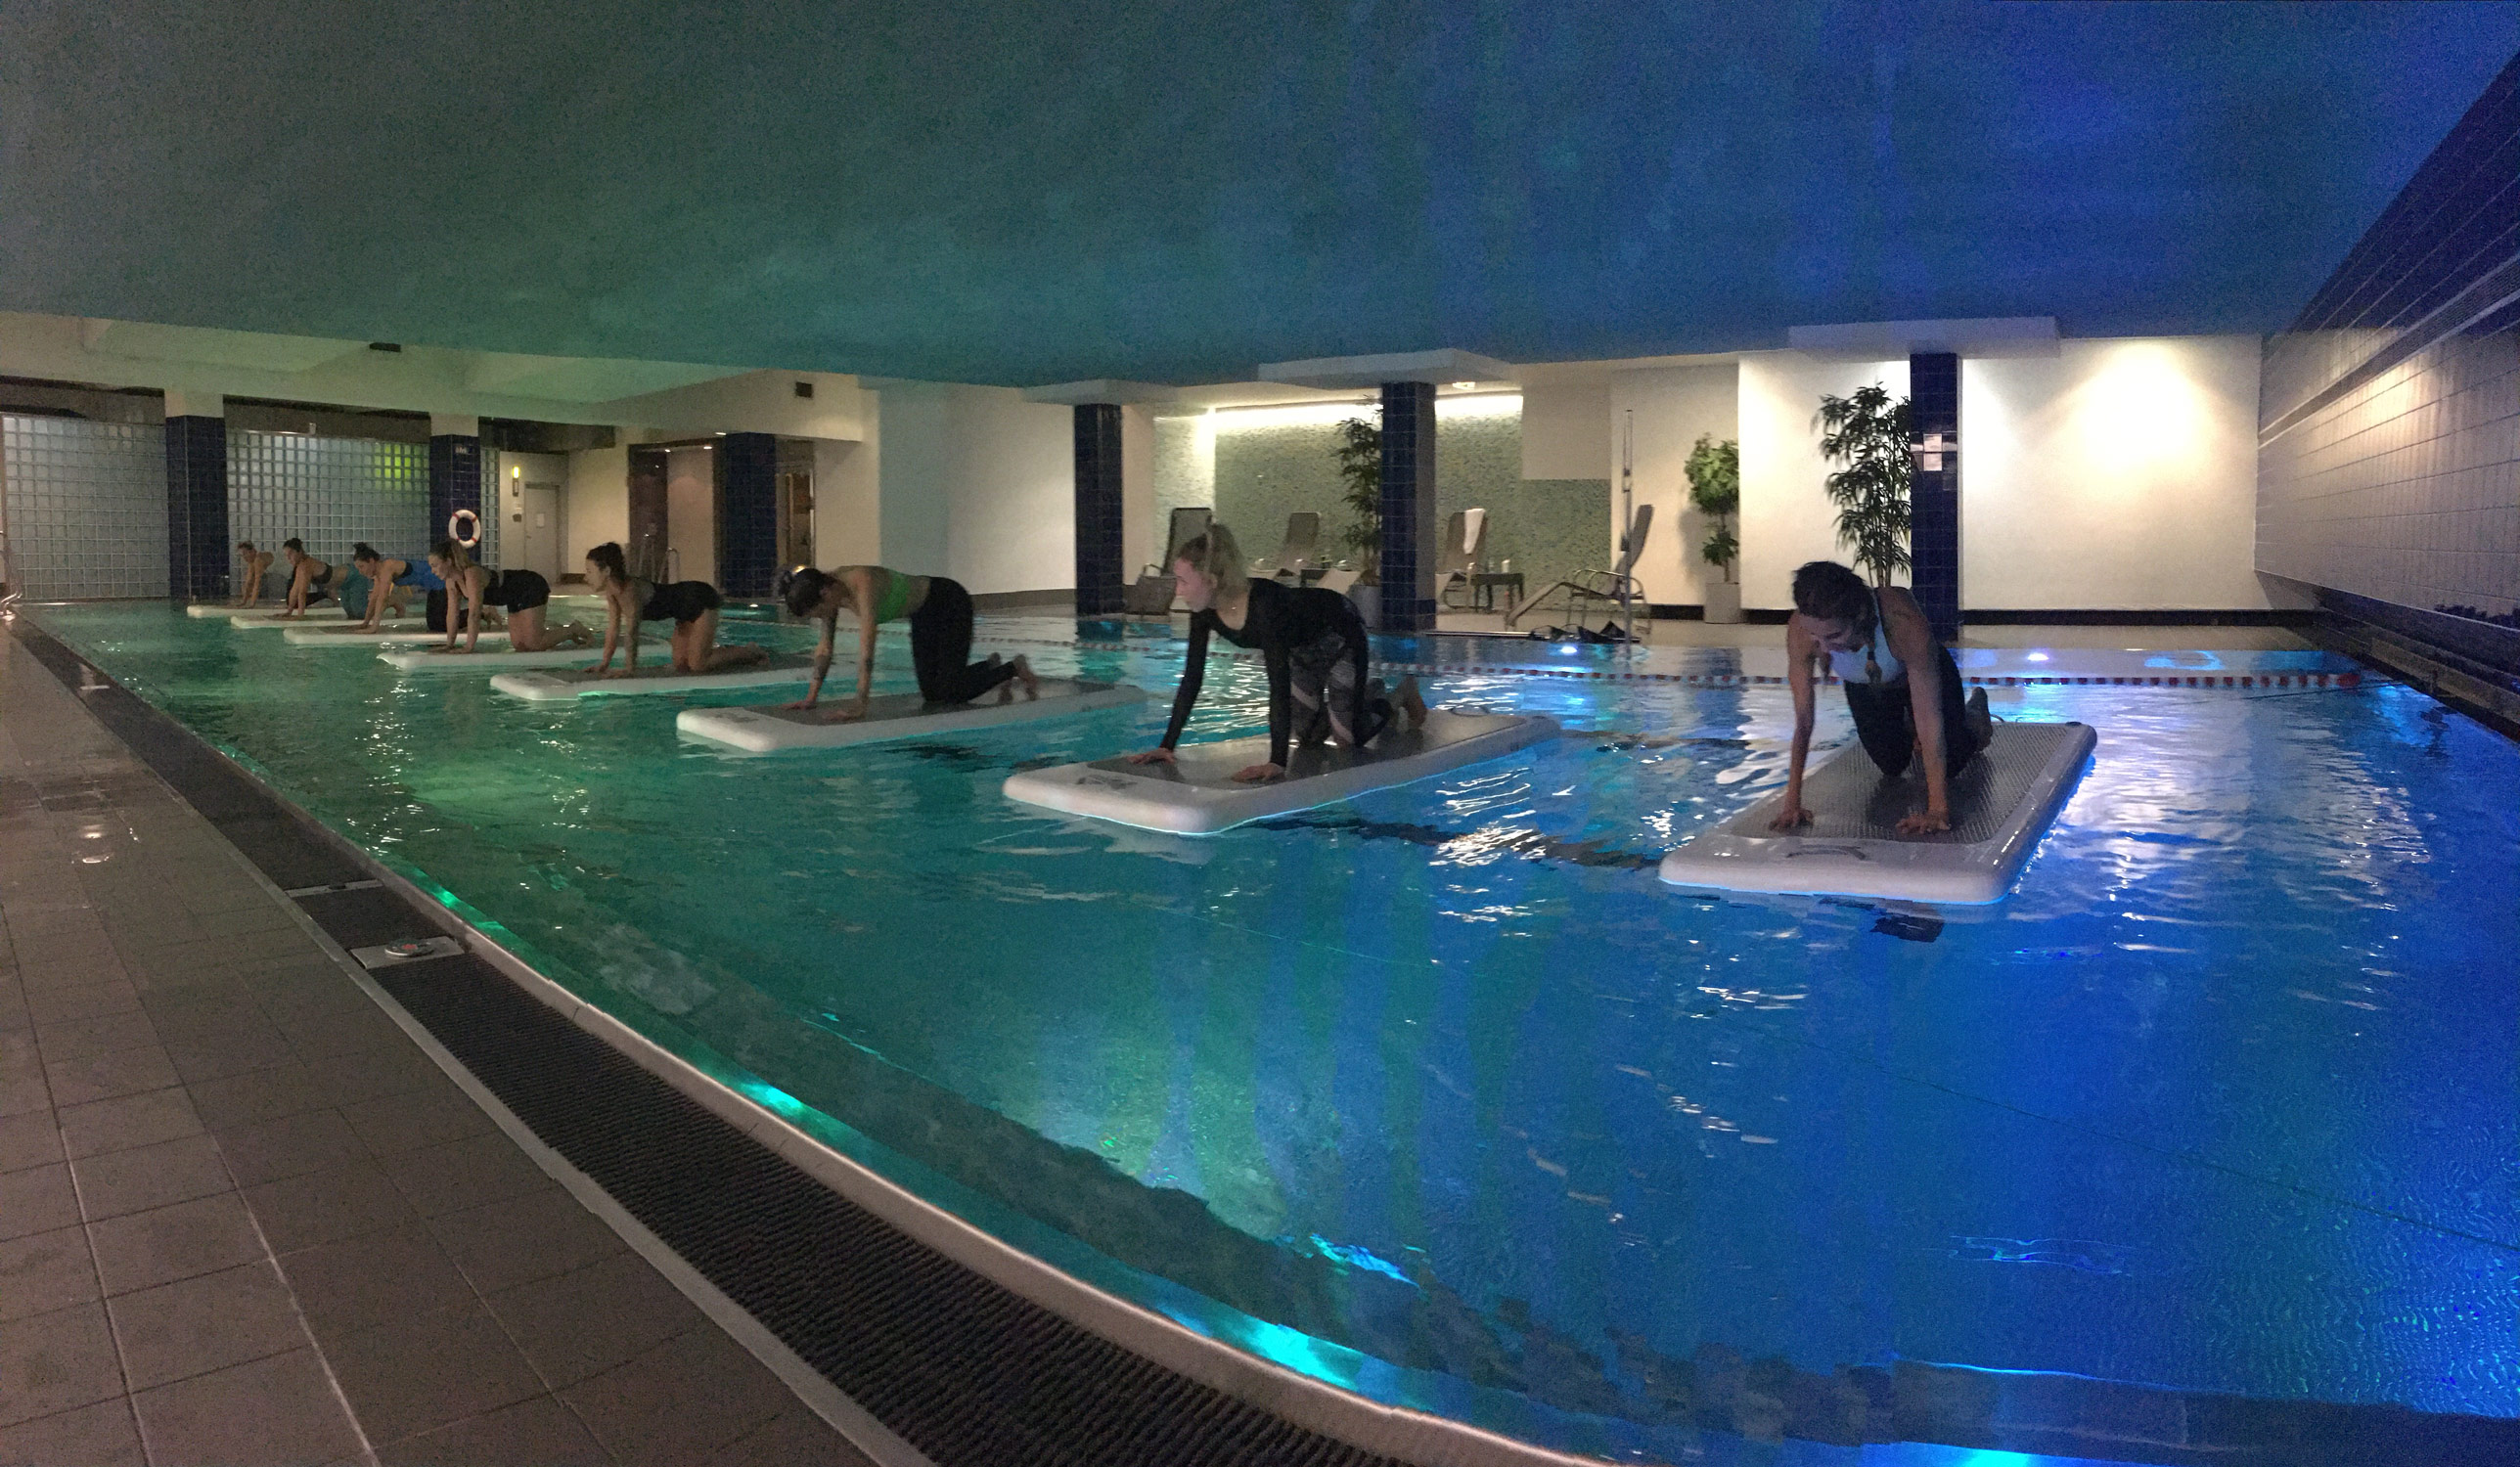 floatfit in wien , tabata 15min , hiit training